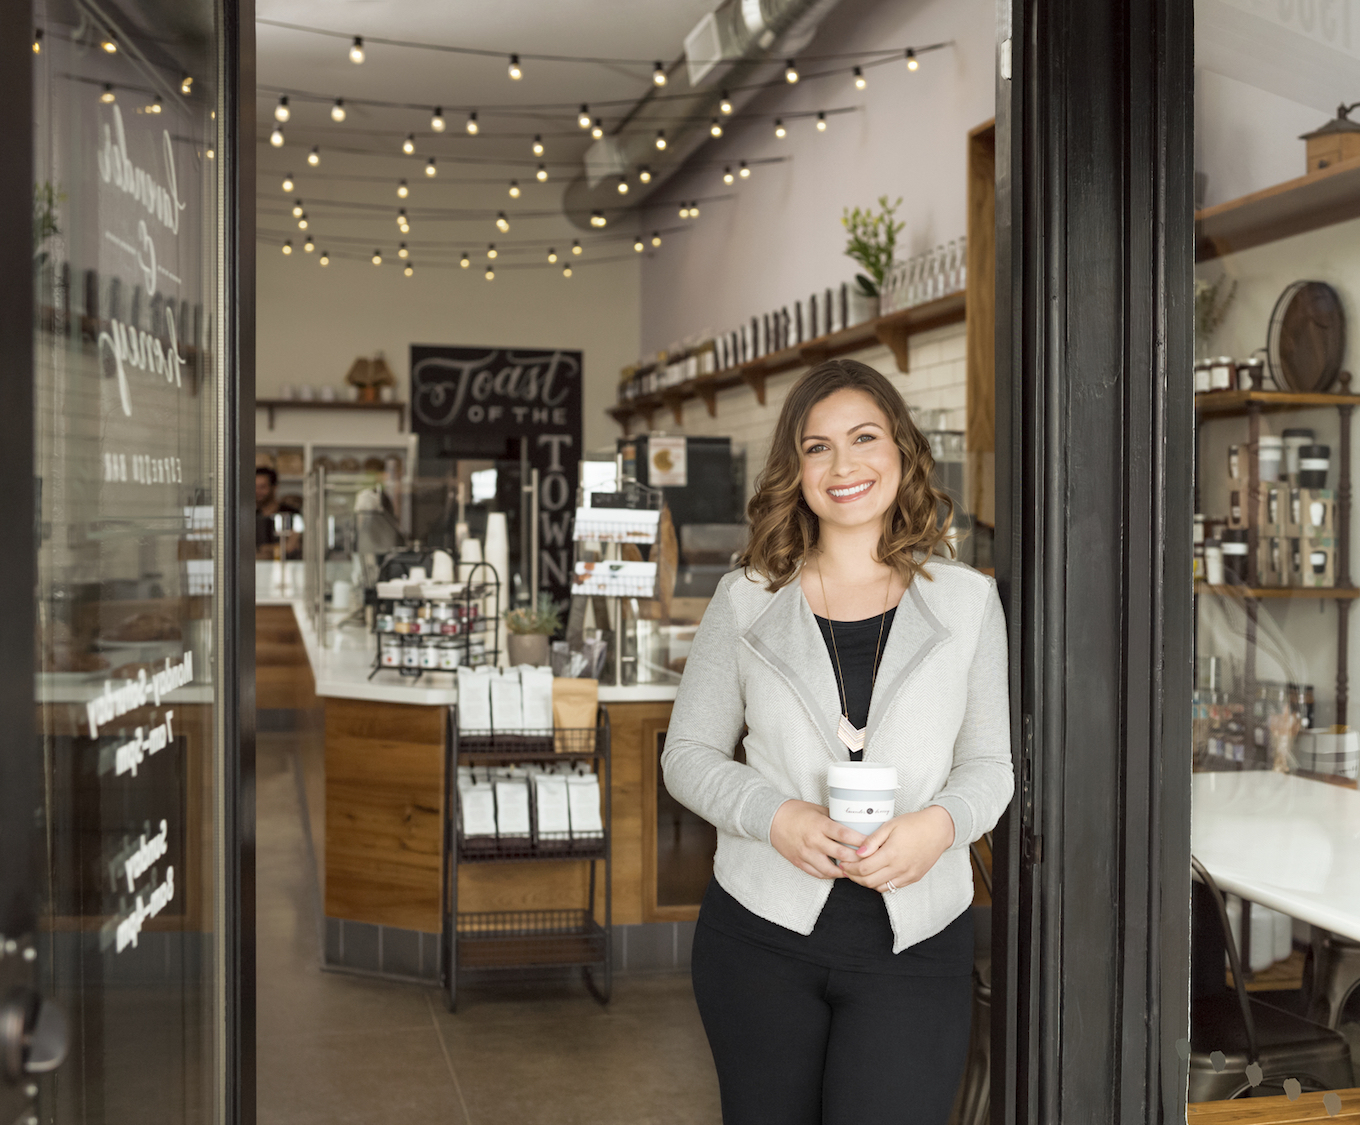 Five qualities of successful small business owners